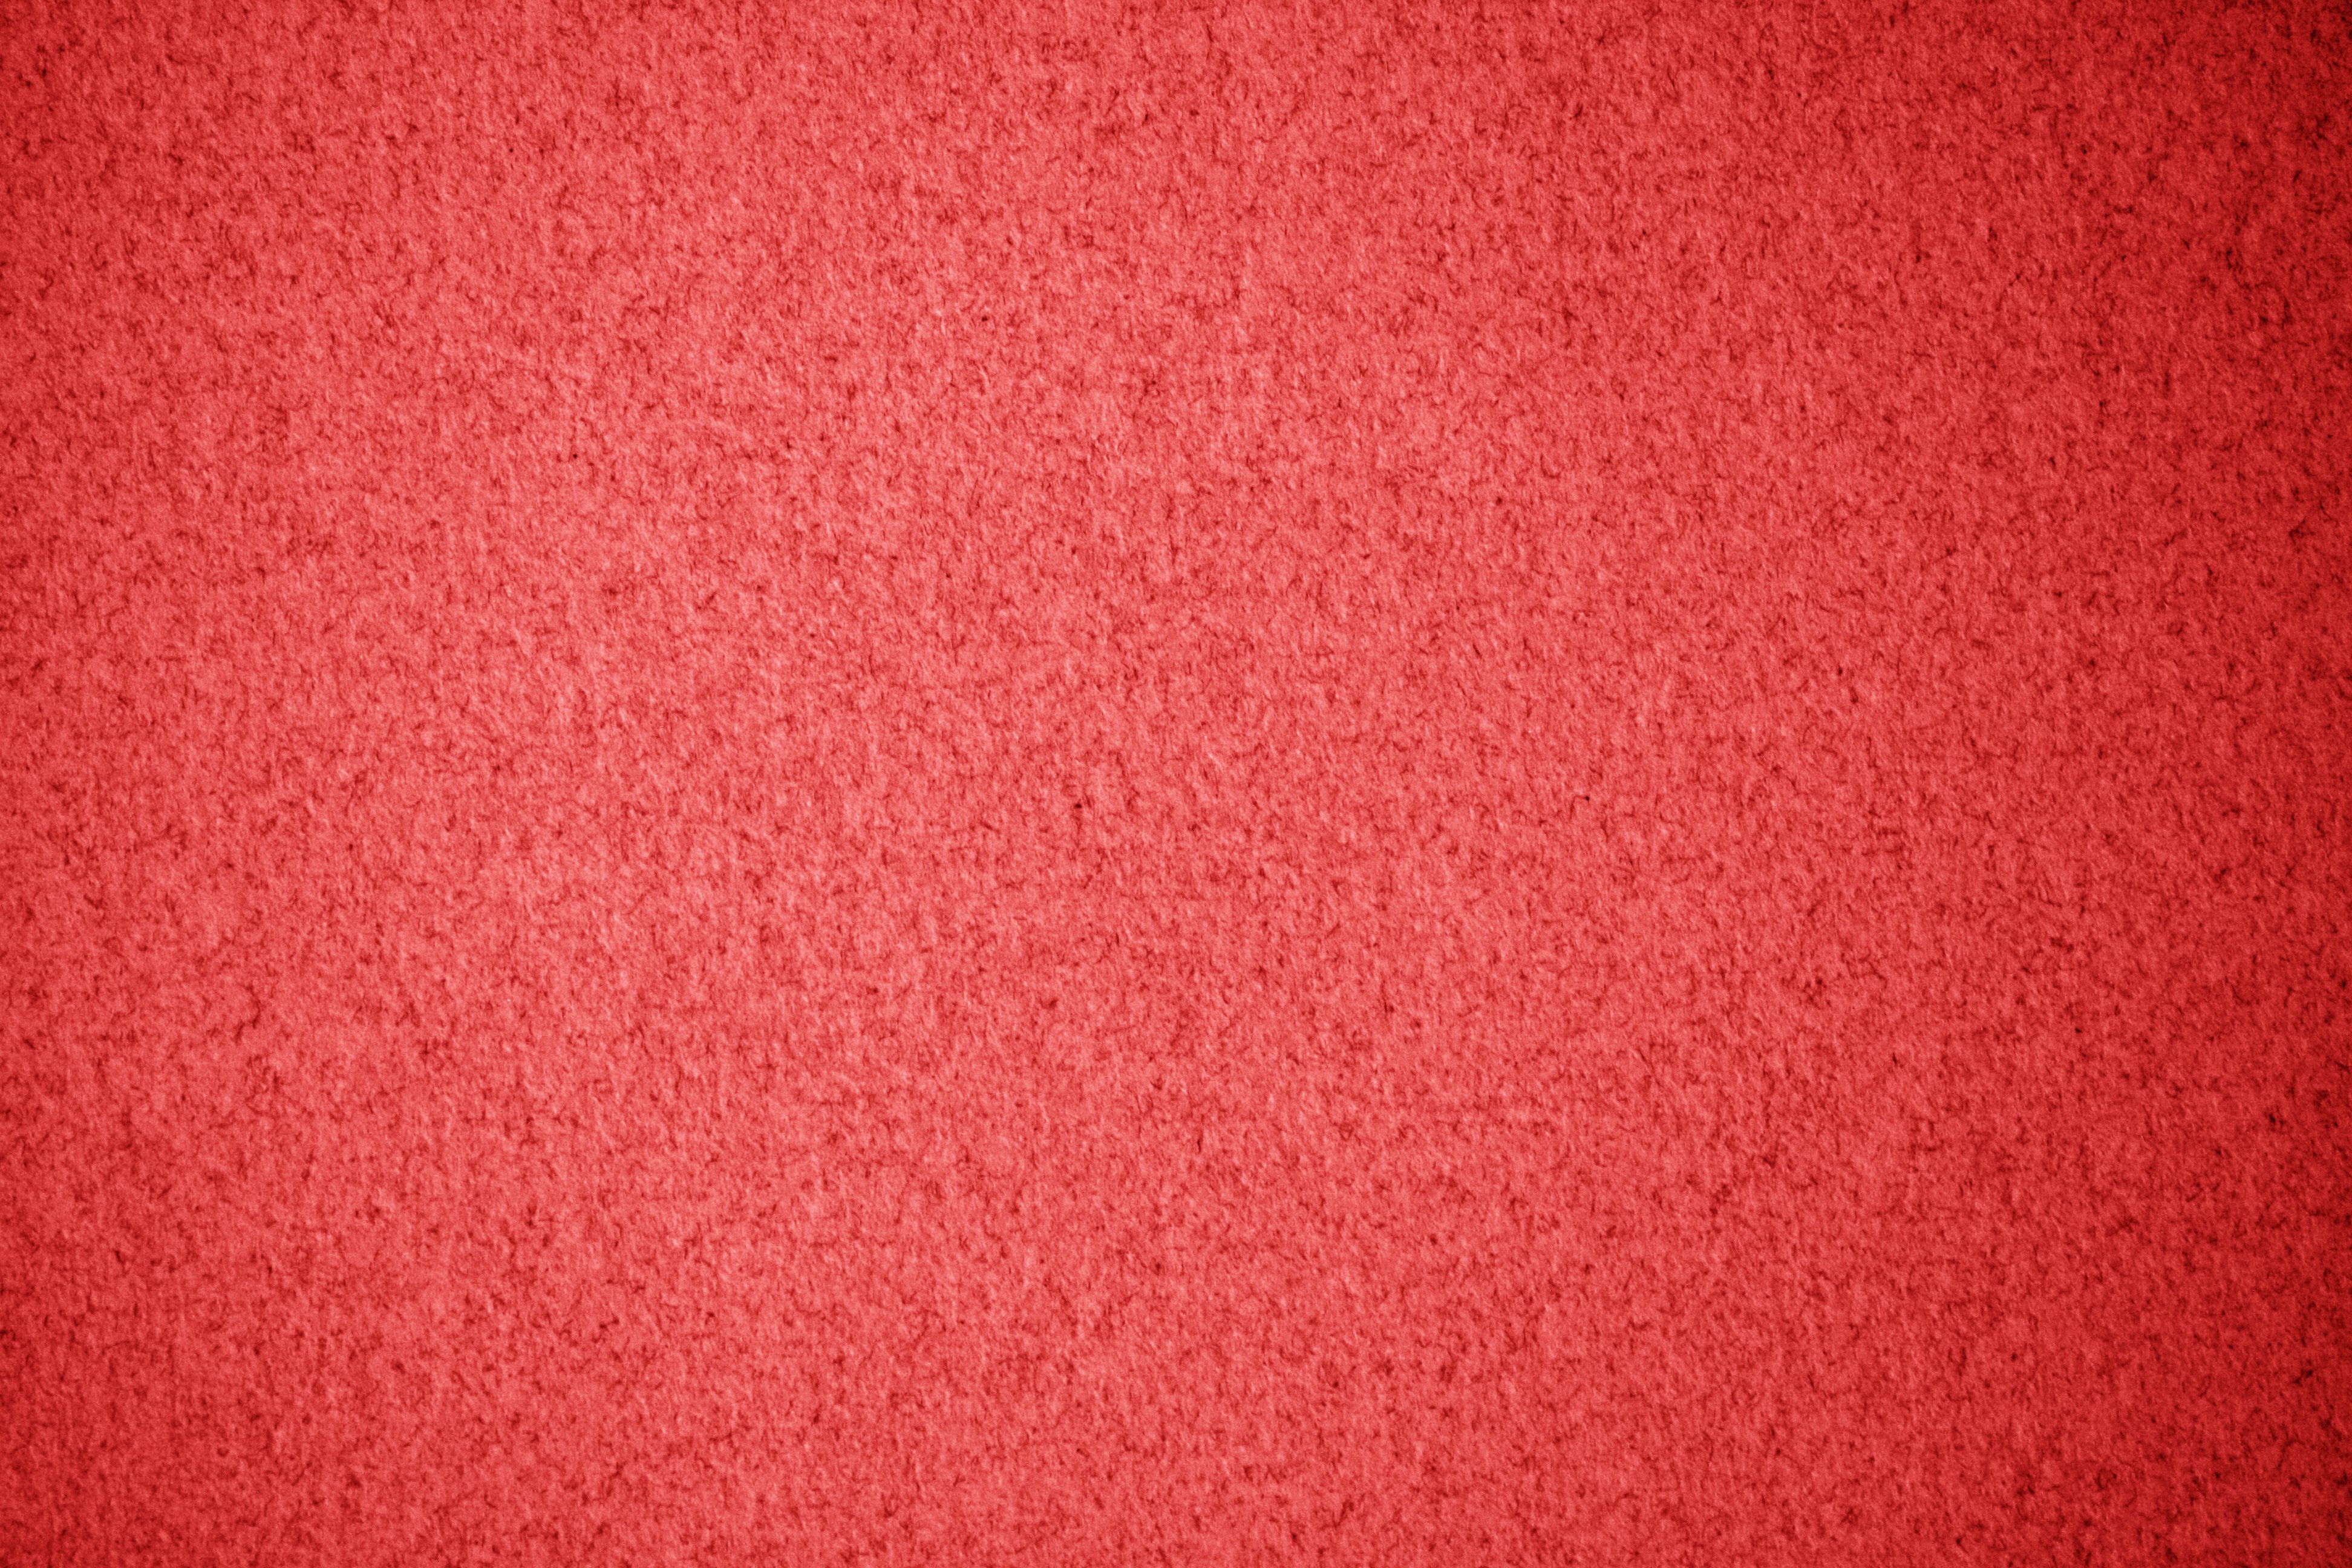 red paper texture wwwpixsharkcom images galleries